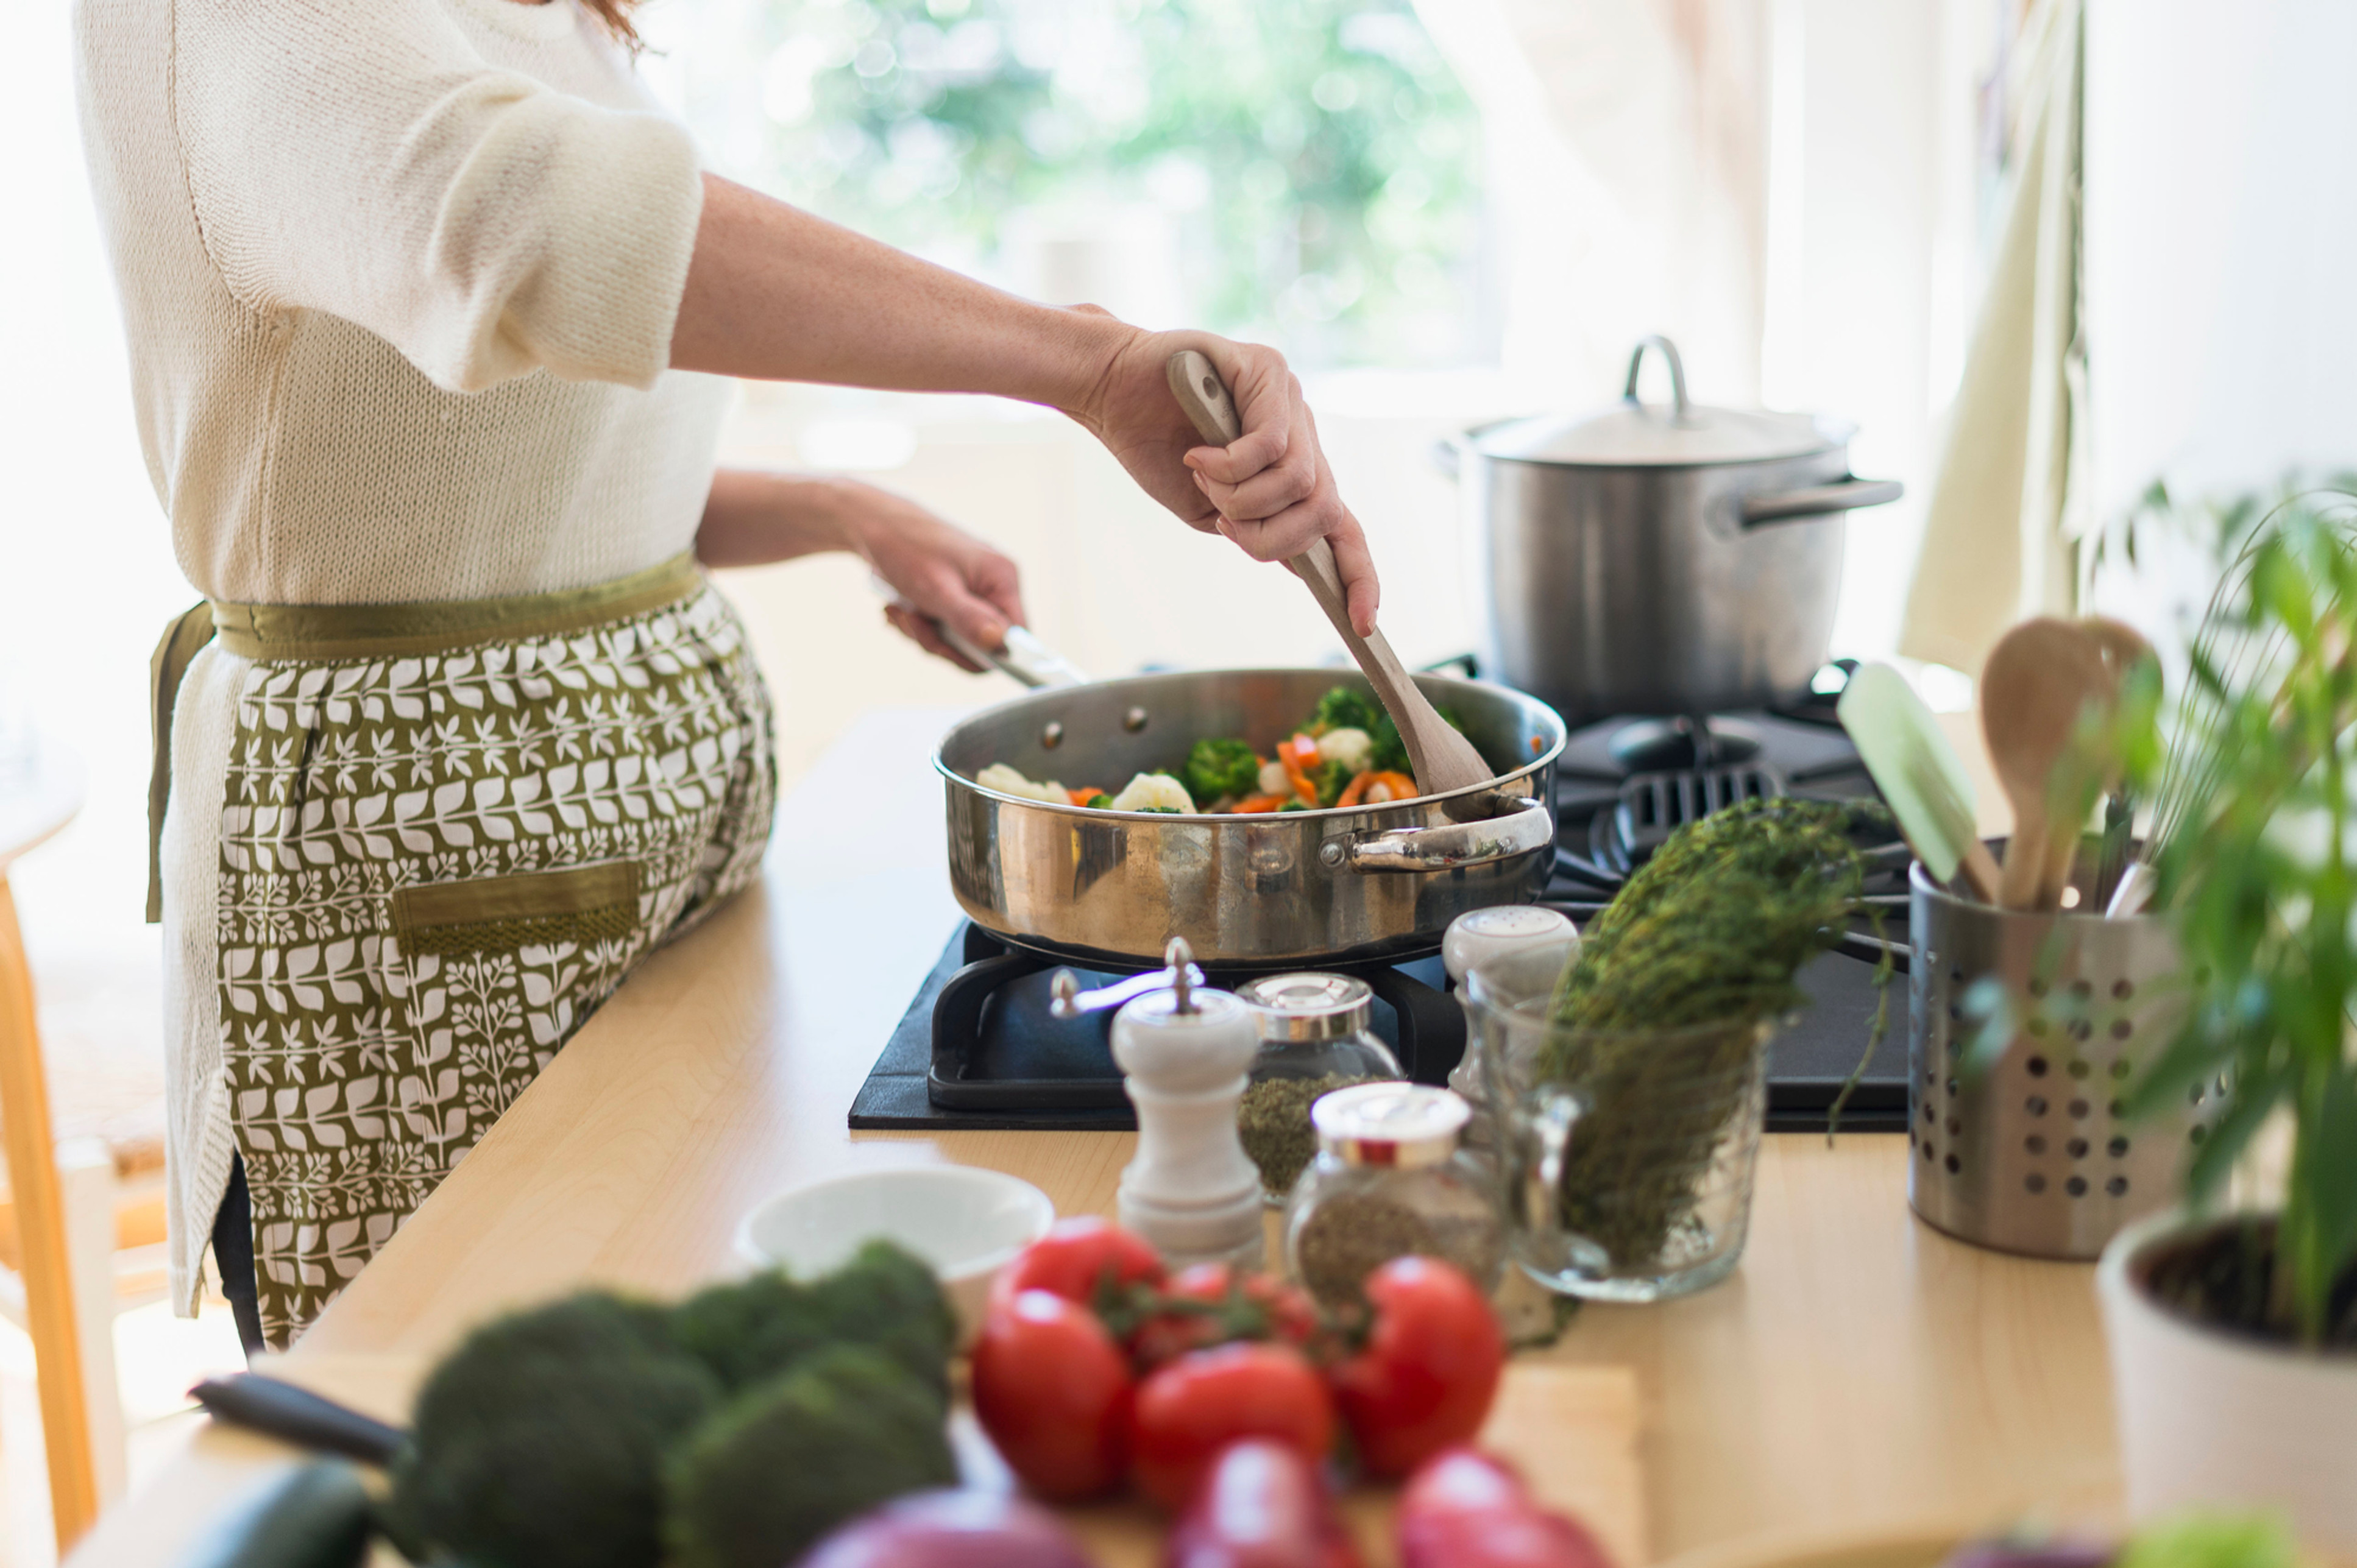 In-Home Cooking Shifts